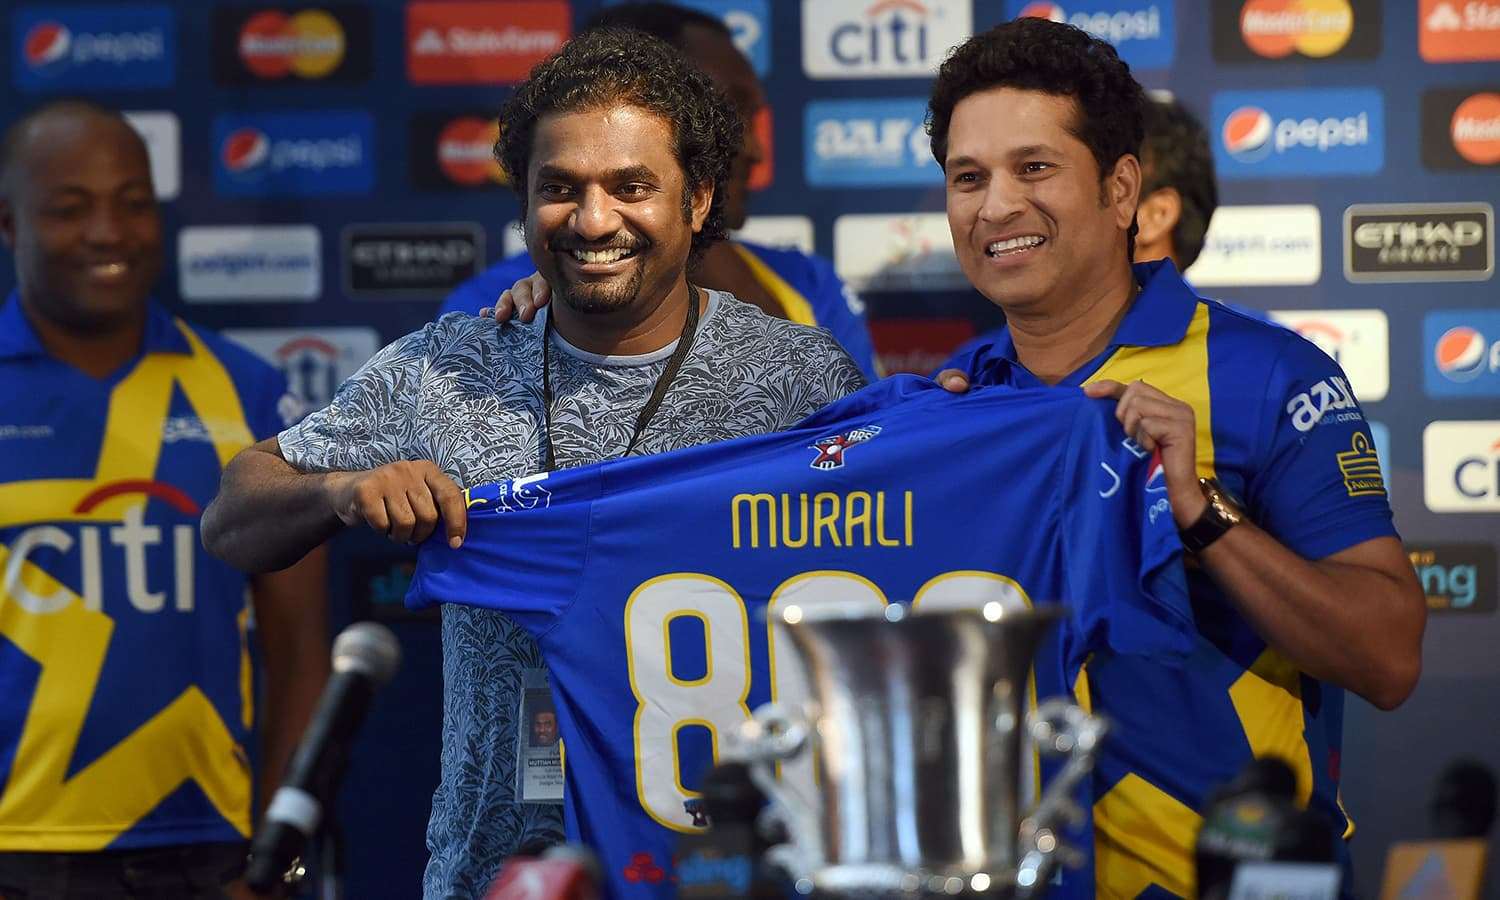 "Retired Indian cricketer Sachin Tendulkar (R) and Sri Lanka's Muttiah Muralitharan pose during a press conference in New York on November 5, 2015. Tenduklar and Australia's Shane Warne will lead a lineup of renowned cricket players from around the world in the inaugural ""Cricket All-Stars,"" a three-game series to be played in Major League Baseball stadiums in New York , Houston and Los Angeles, to promote cricket the US. AFP PHOTO/JEWEL SAMAD"